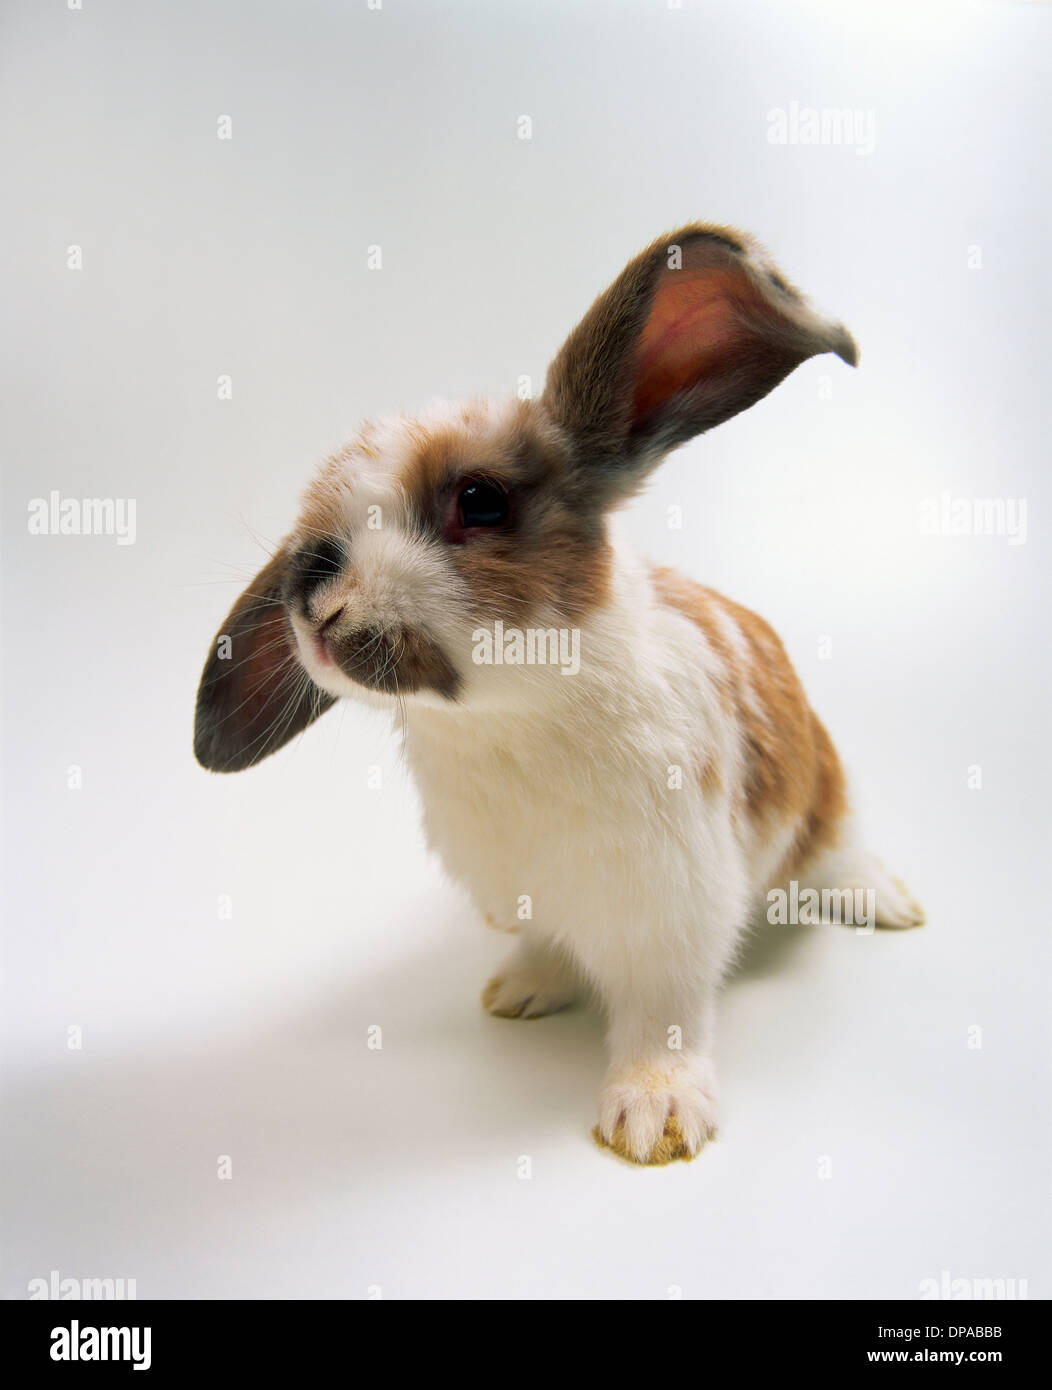 Portrait of lop eared baby rabbit - Stock Image